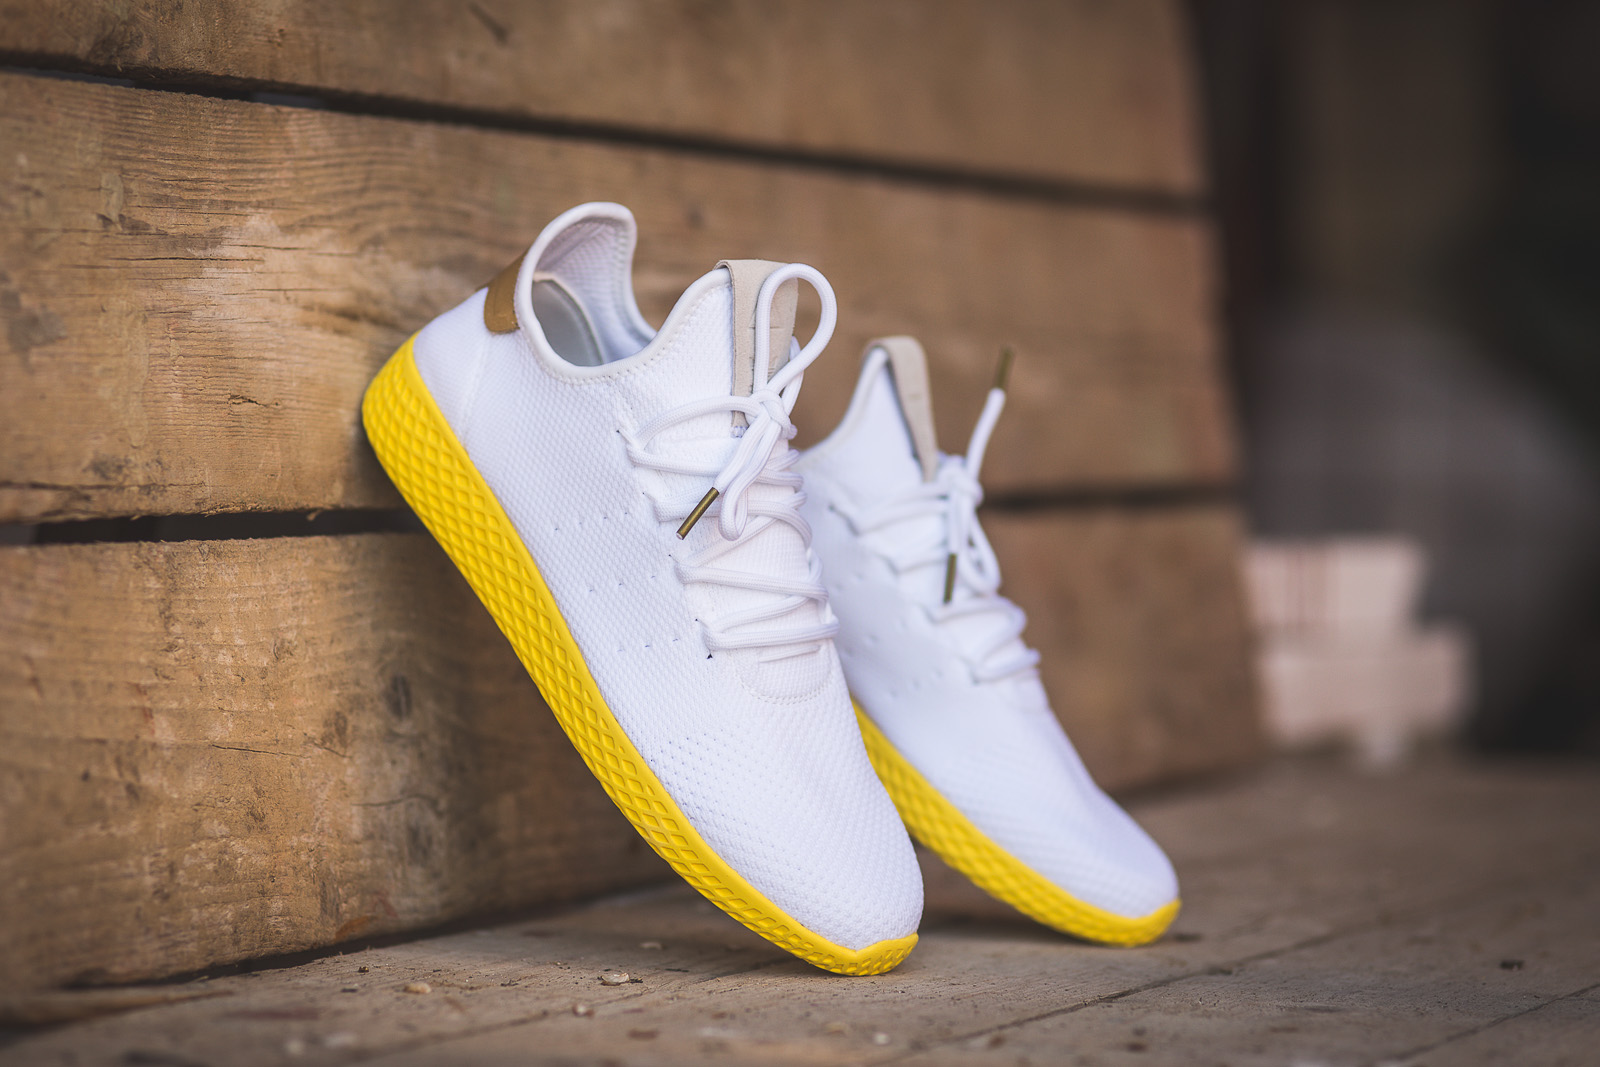 Pharrell Williams x adidas Tennis HU | Release info